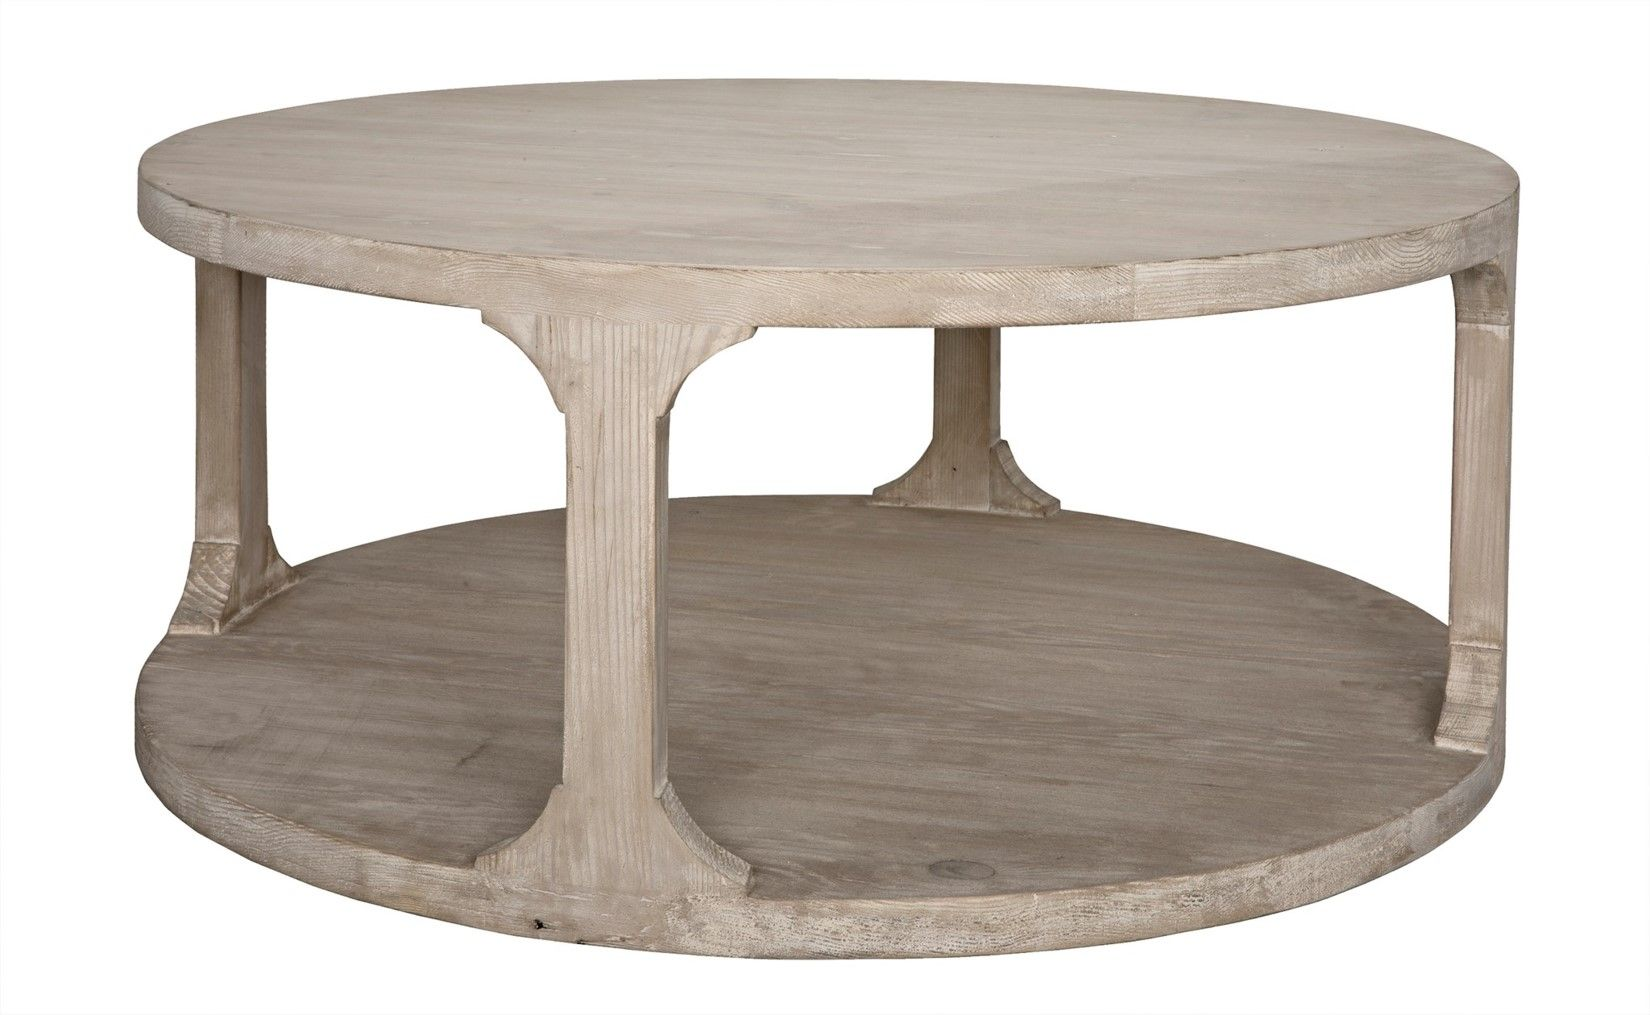 Cfc Noir Gimso Round Coffee Table Small Itemid Ow271 S Qty Available 15 In Production 0 Dimen Coffee Table Fancy Coffee Table Rustic Coffee Tables [ 1015 x 1650 Pixel ]